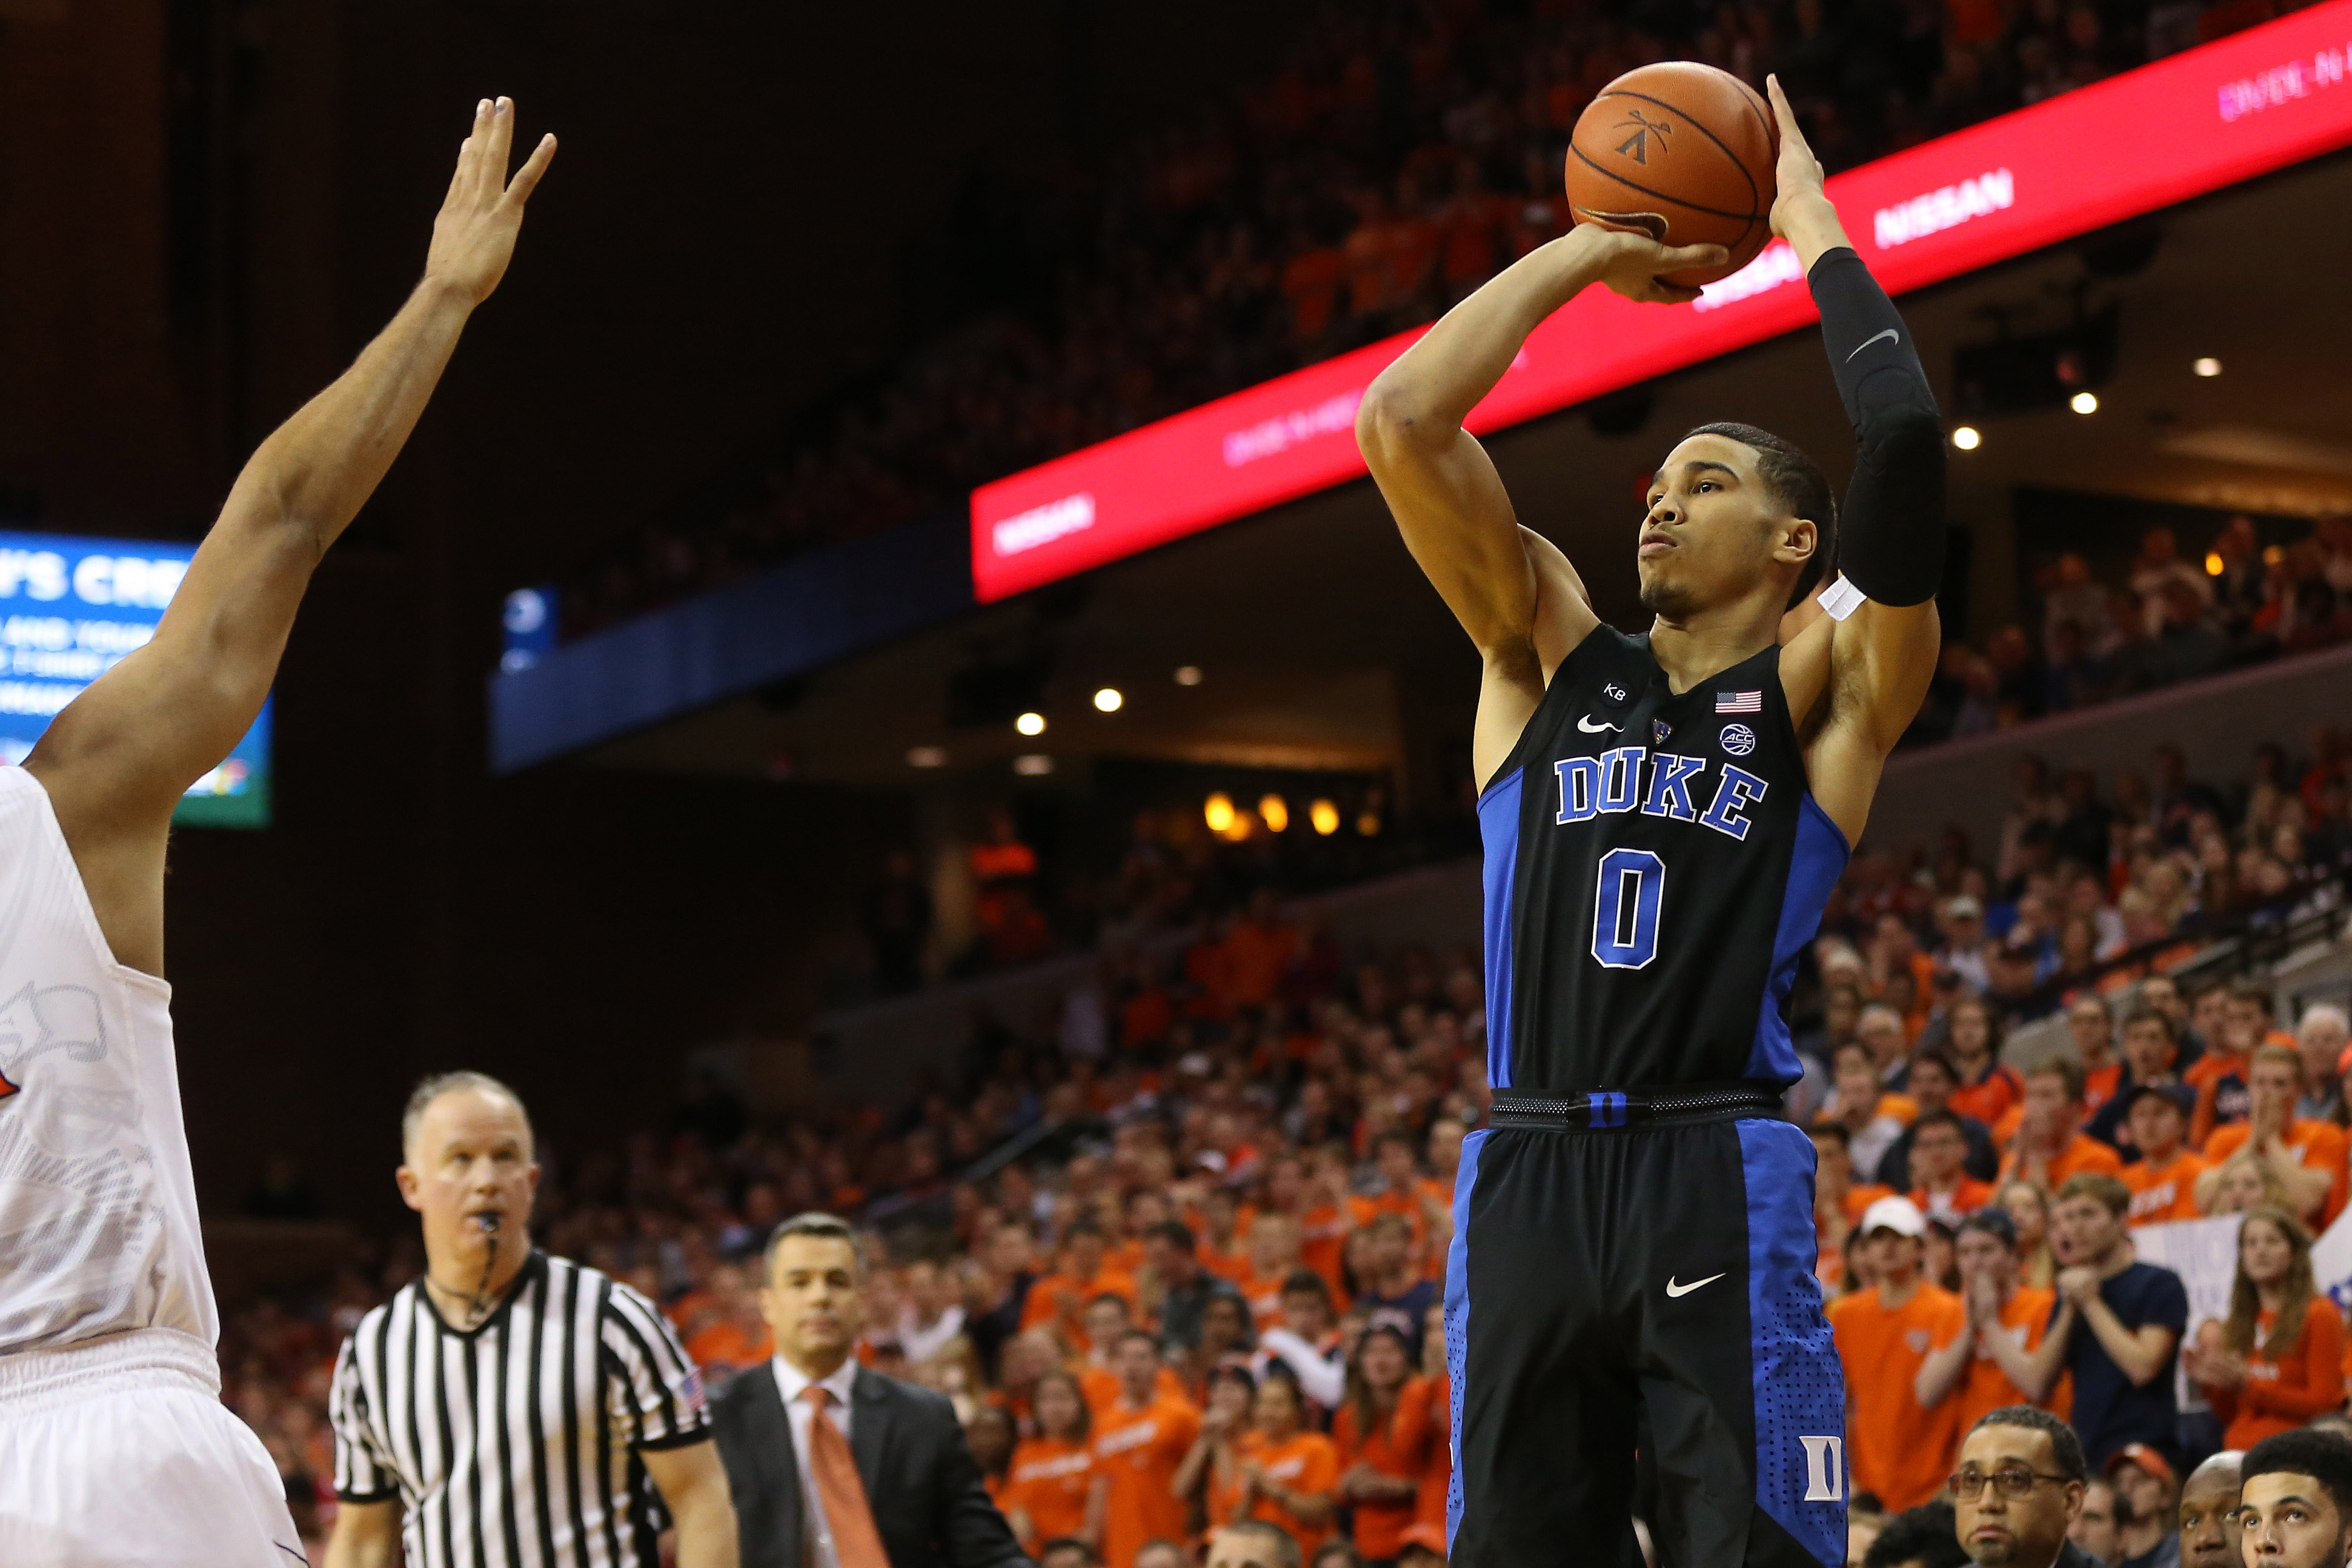 jayson tatum leads duke basketball over virginia